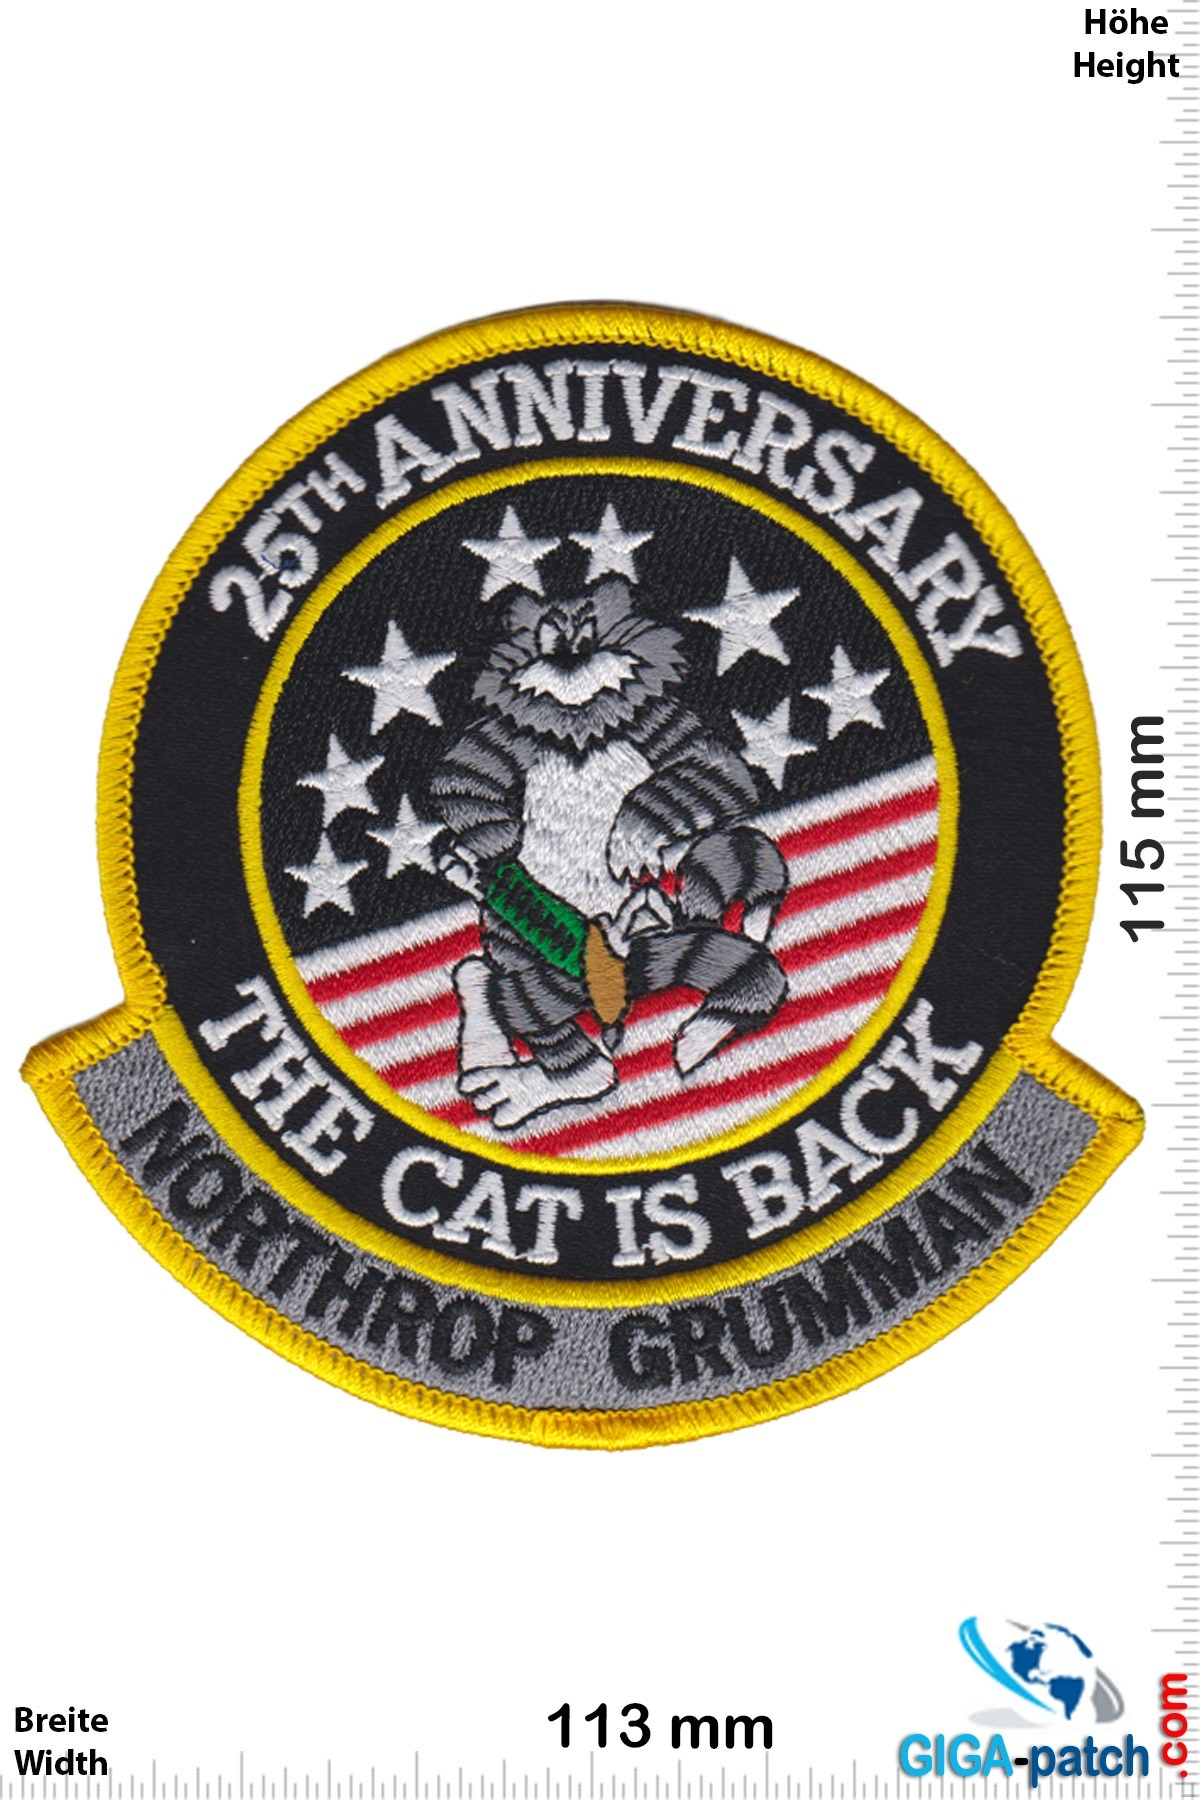 U.S. Navy F-14 - 25th Anniversary - the Cat is Back - Northrop Grumman- HQ